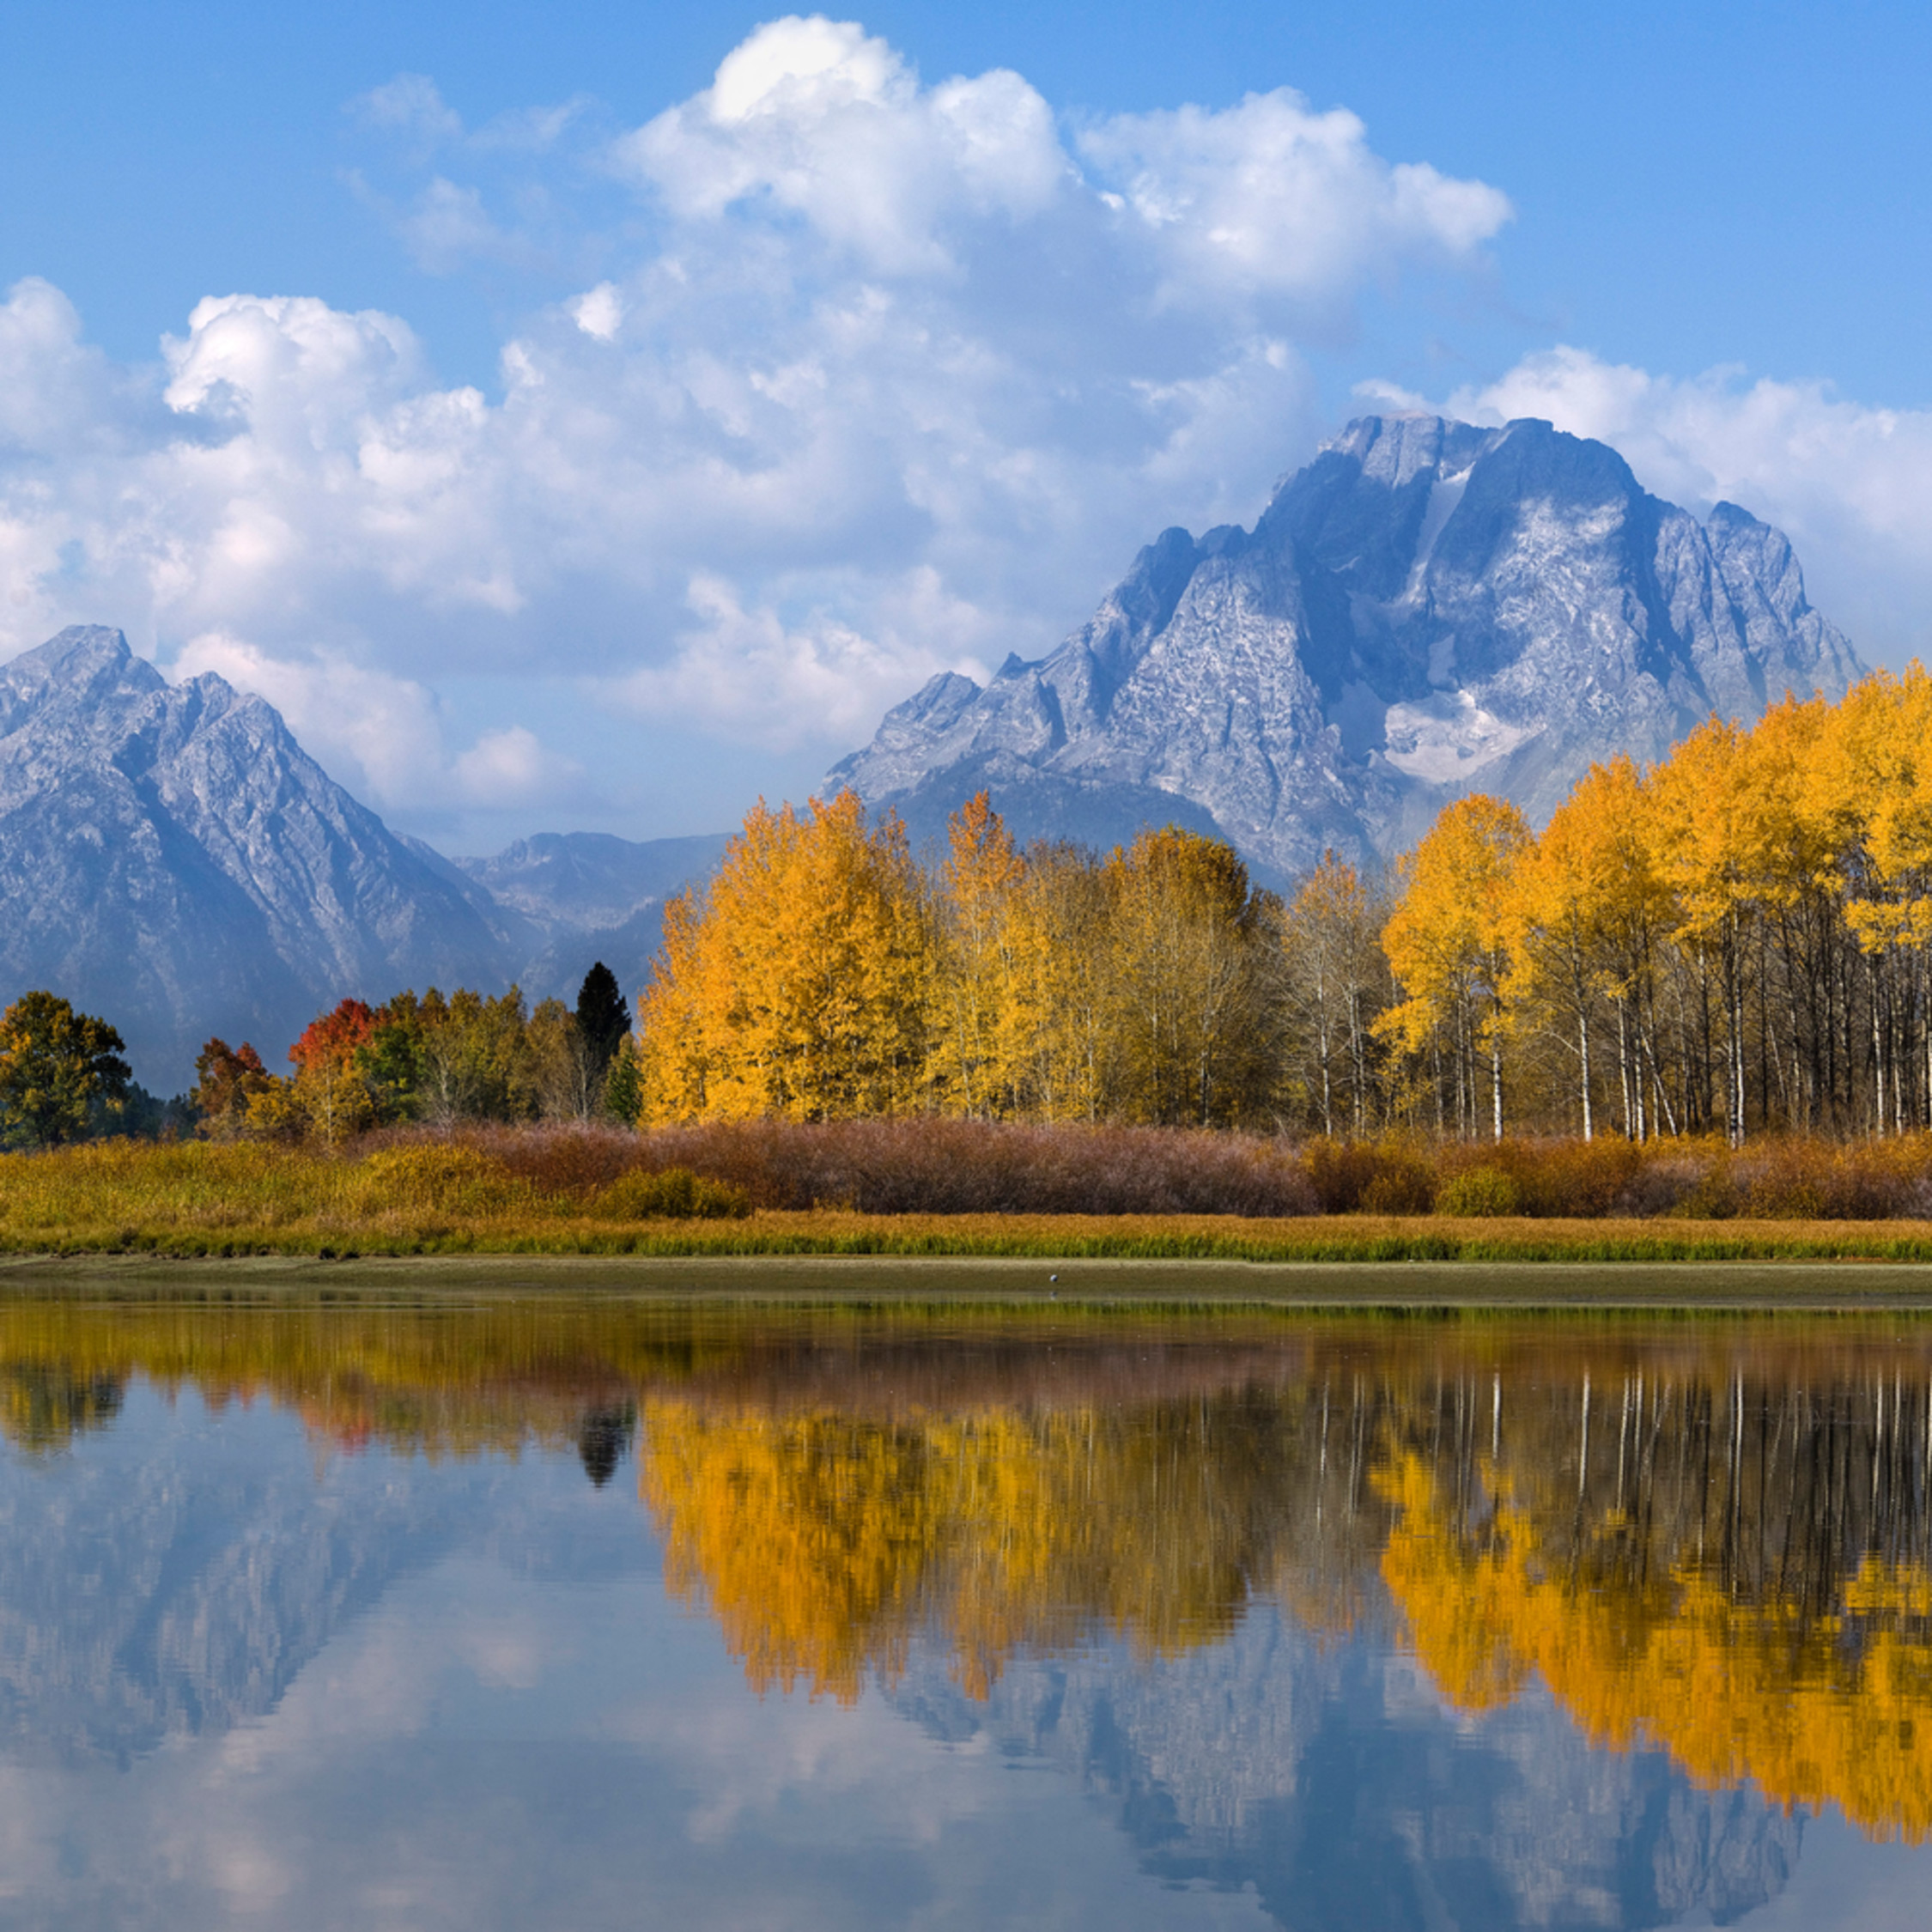 Oxbow bend cropped for website fmc66z